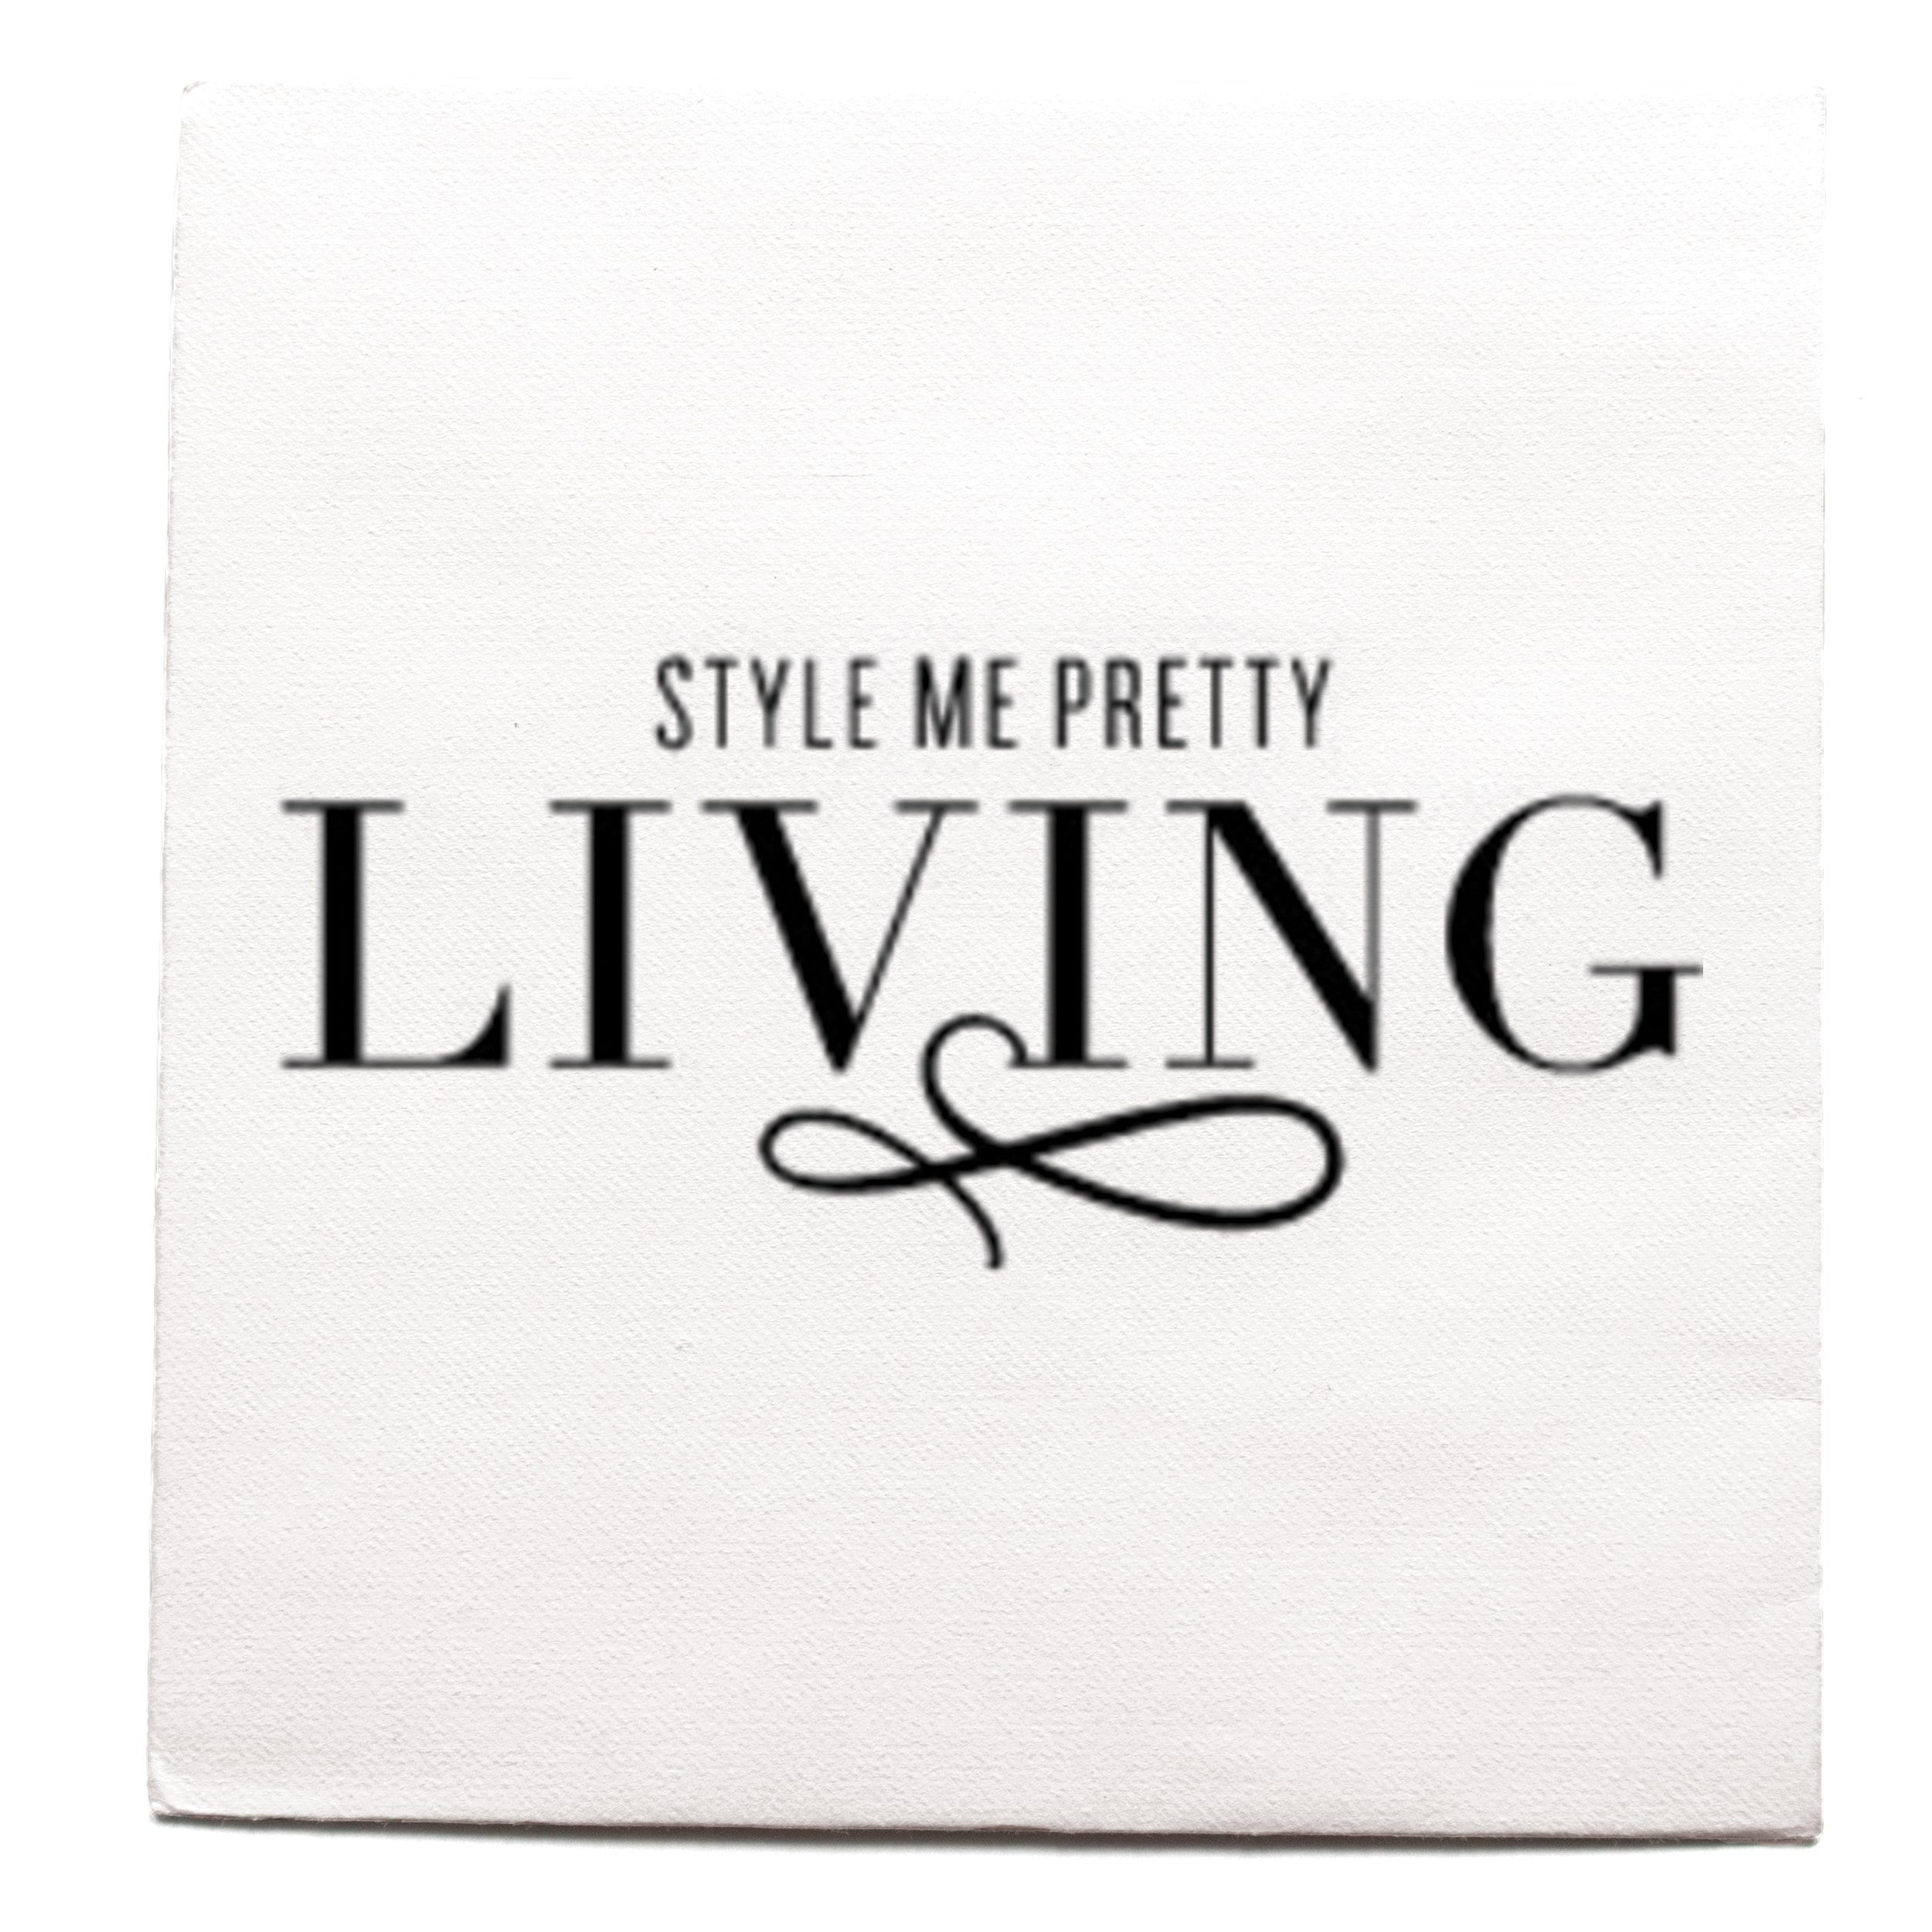 Style Me Pretty Living Darcy Miller Designs